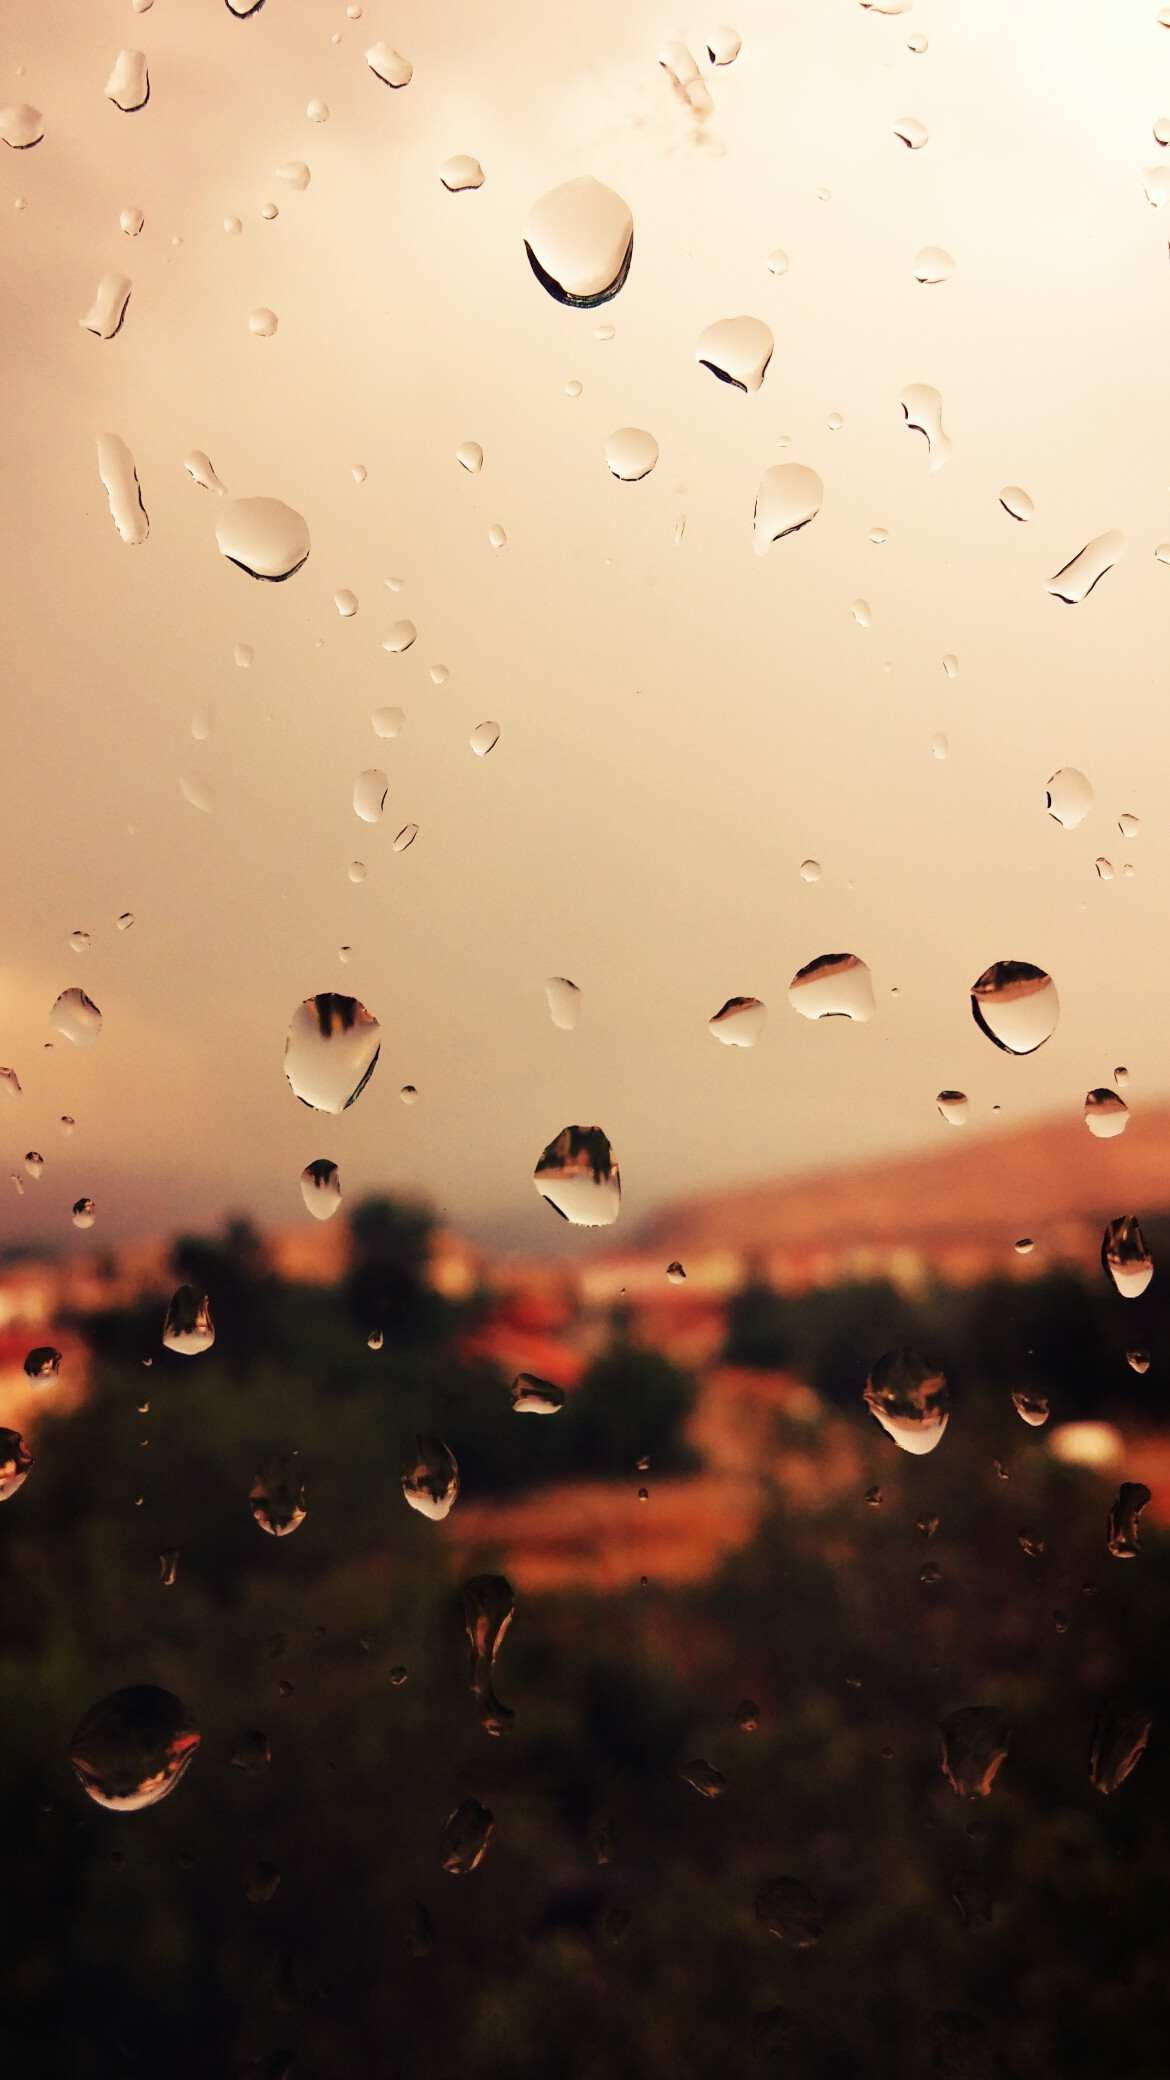 Raindrops on Glass Wallpaper (With images) Iphone 6s